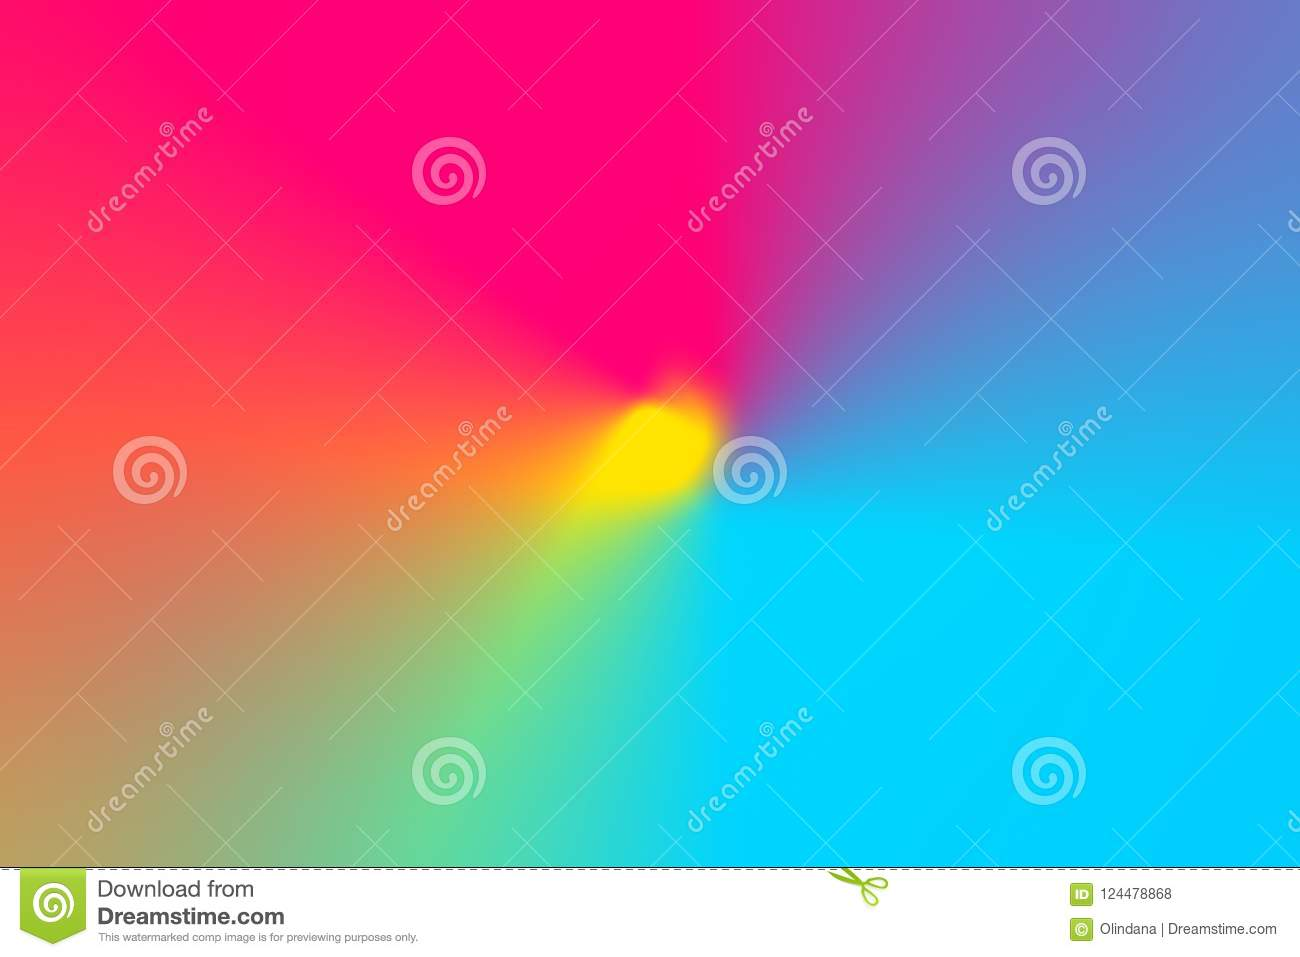 Abstract gradient blurred multicolored rainbow light spectrum radial background. Radial concentric pattern. Vivid neon Colors